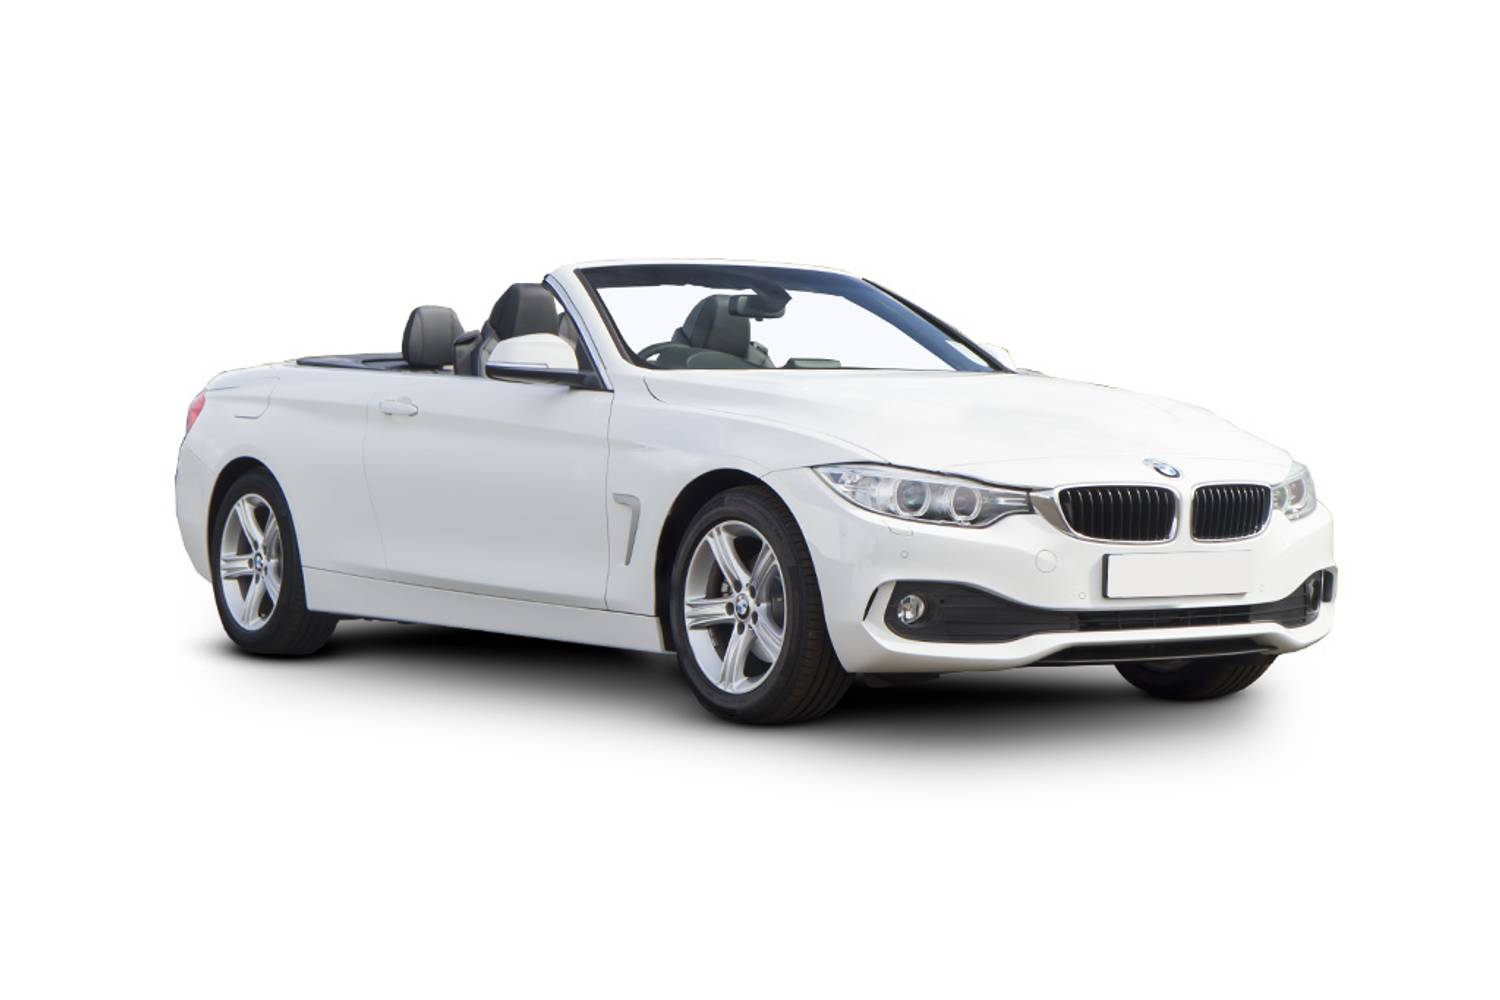 BMW 4 Series Convertible 2dr Front Three Quarter